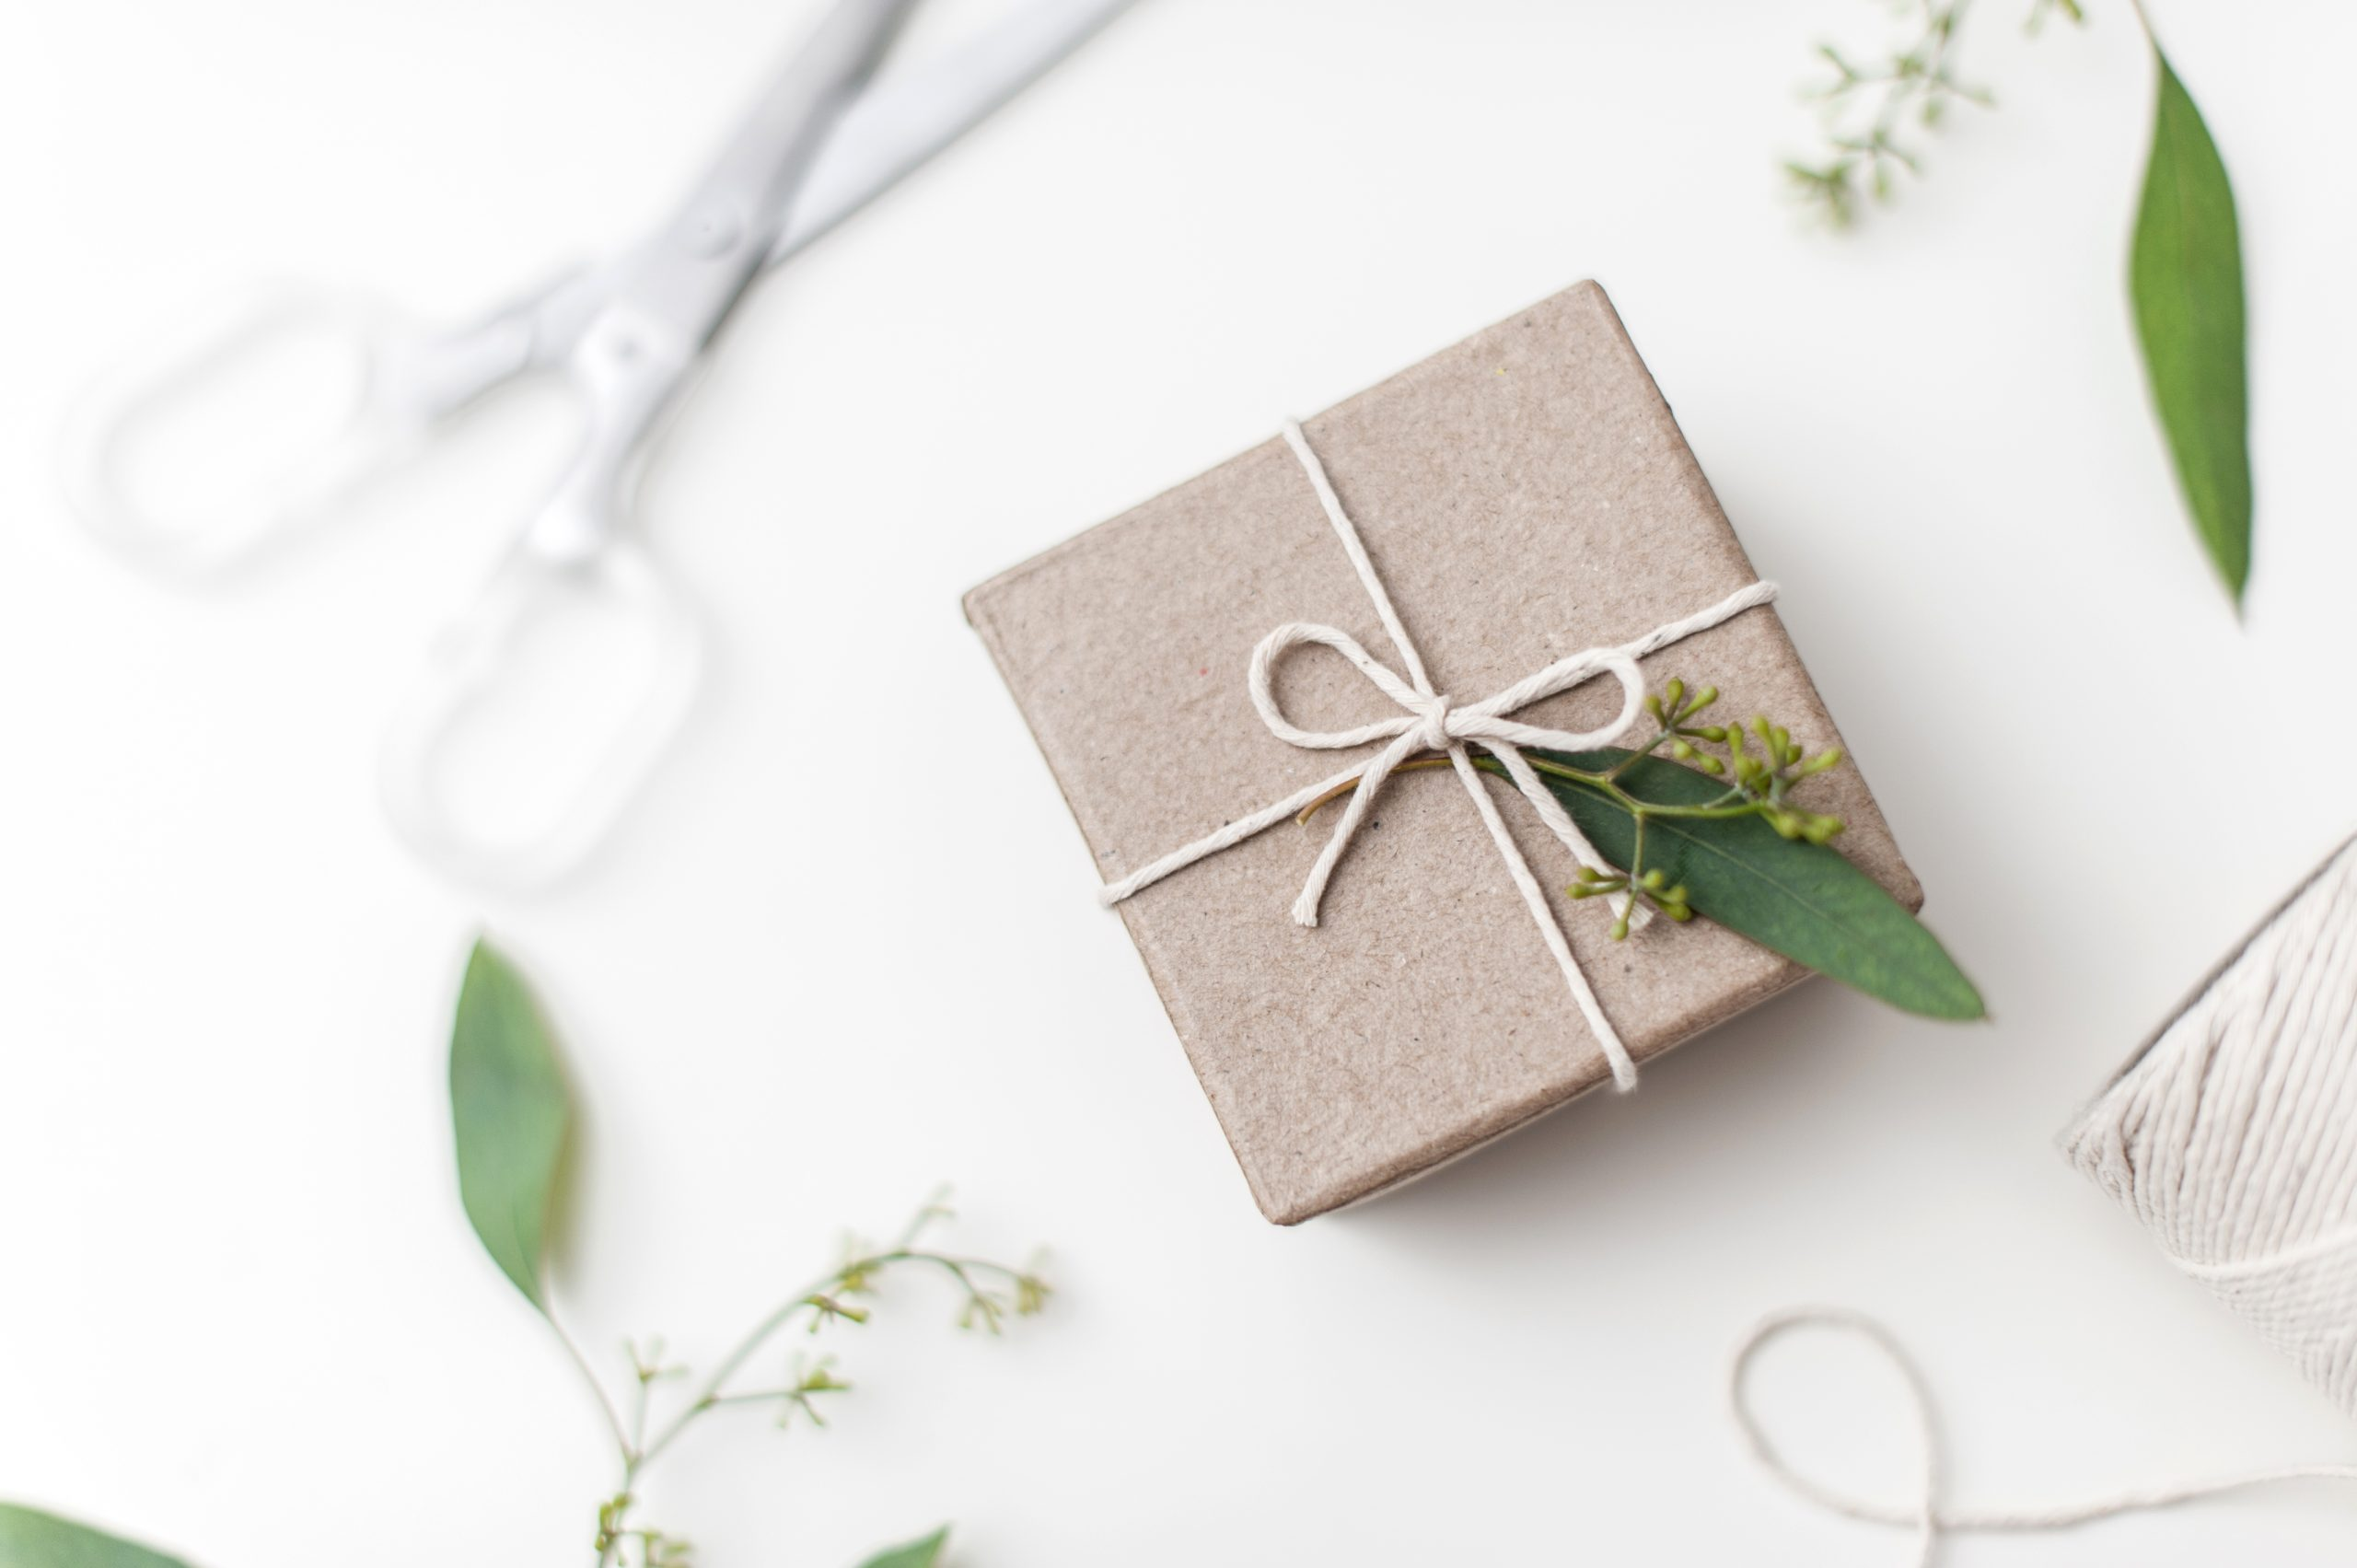 Mother's Day Gift Idea | Three Gifts for Moms with Little Ones